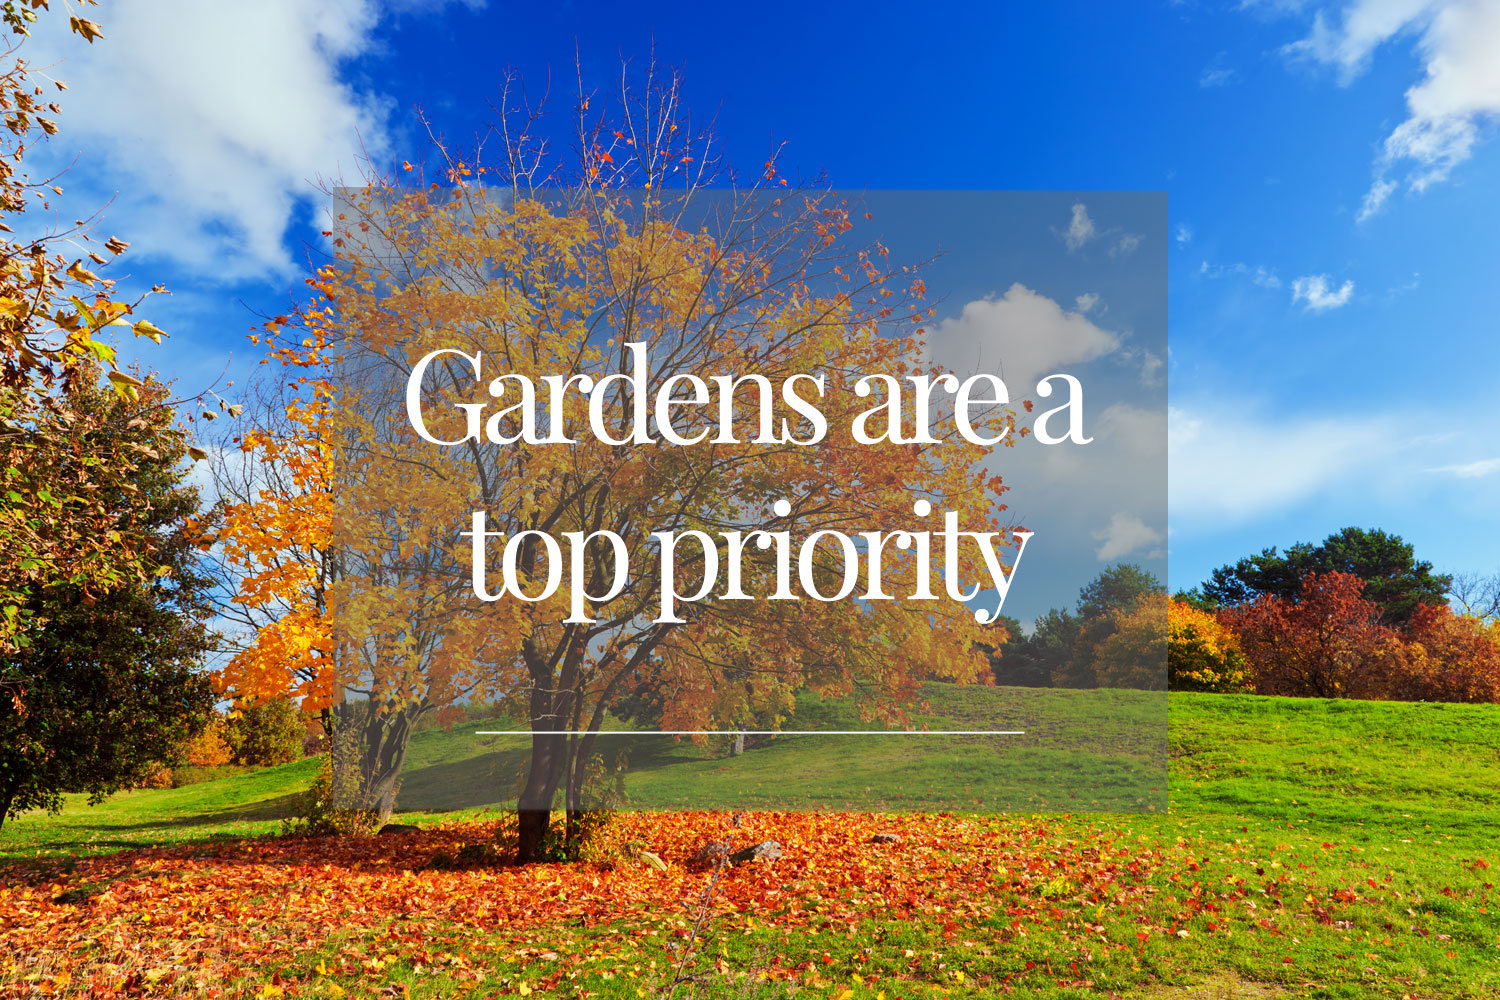 Gardens-are-a-top-priority